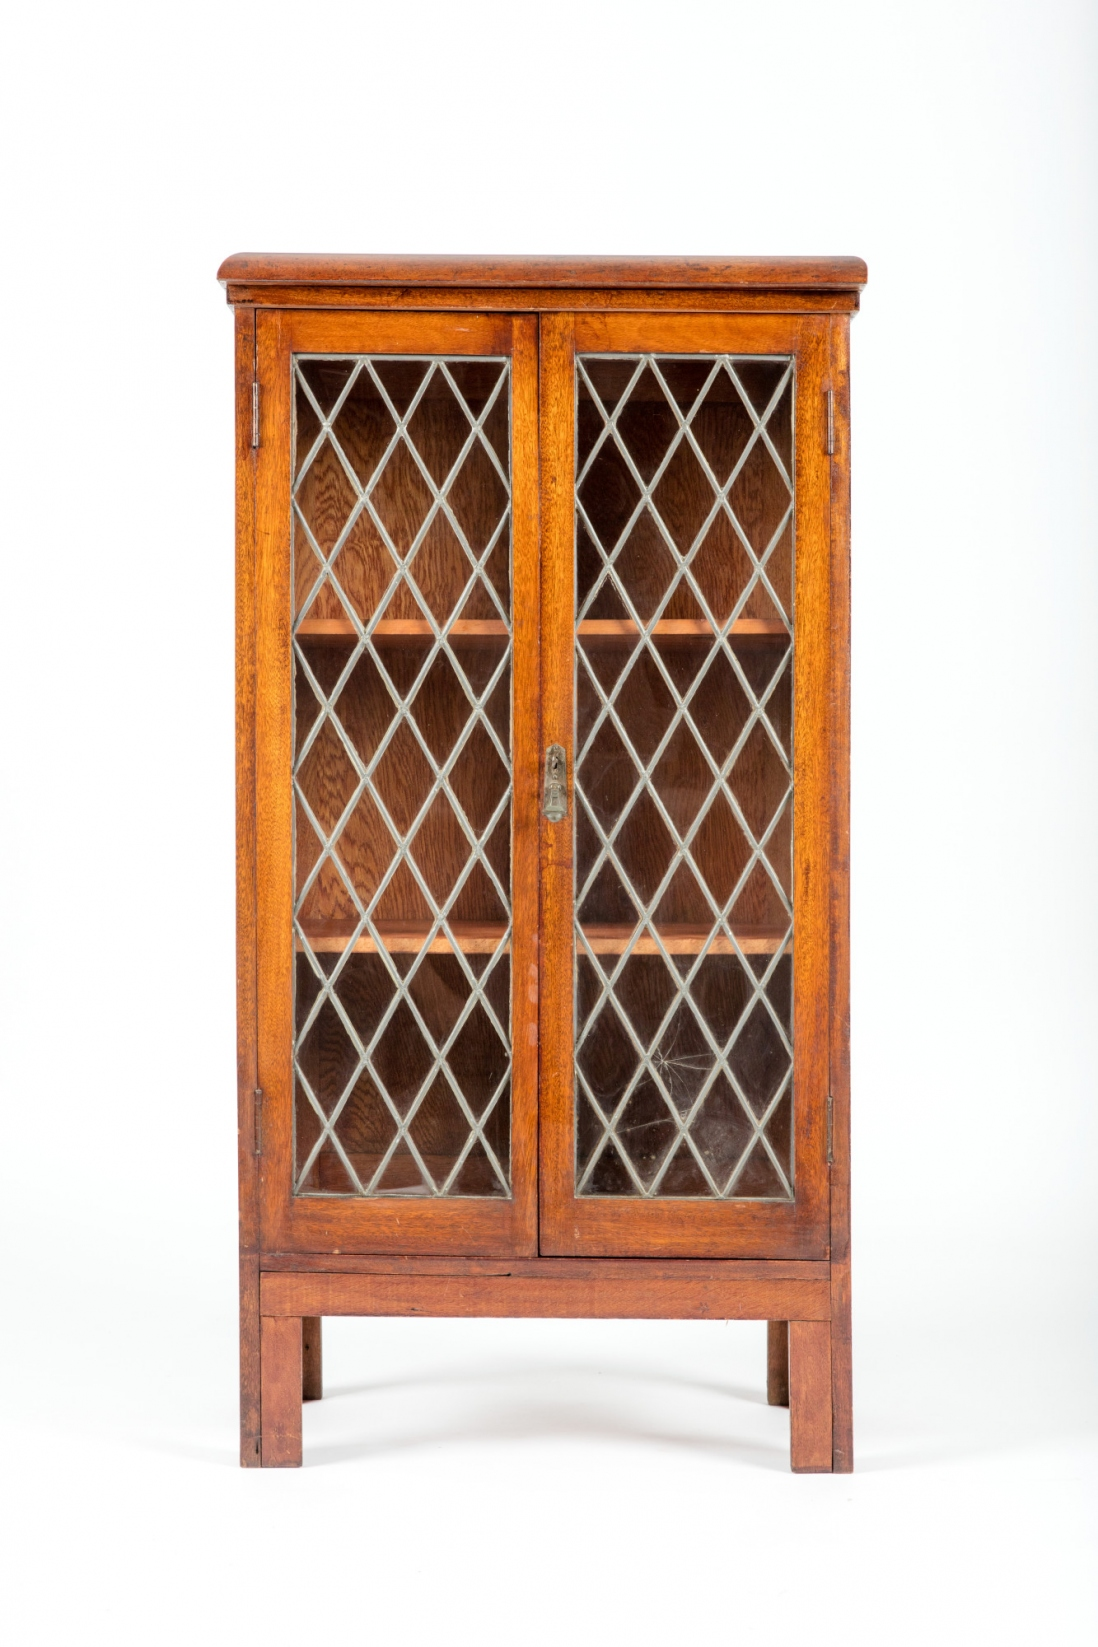 Timber cabinet with diamond shaped patterned glass front.